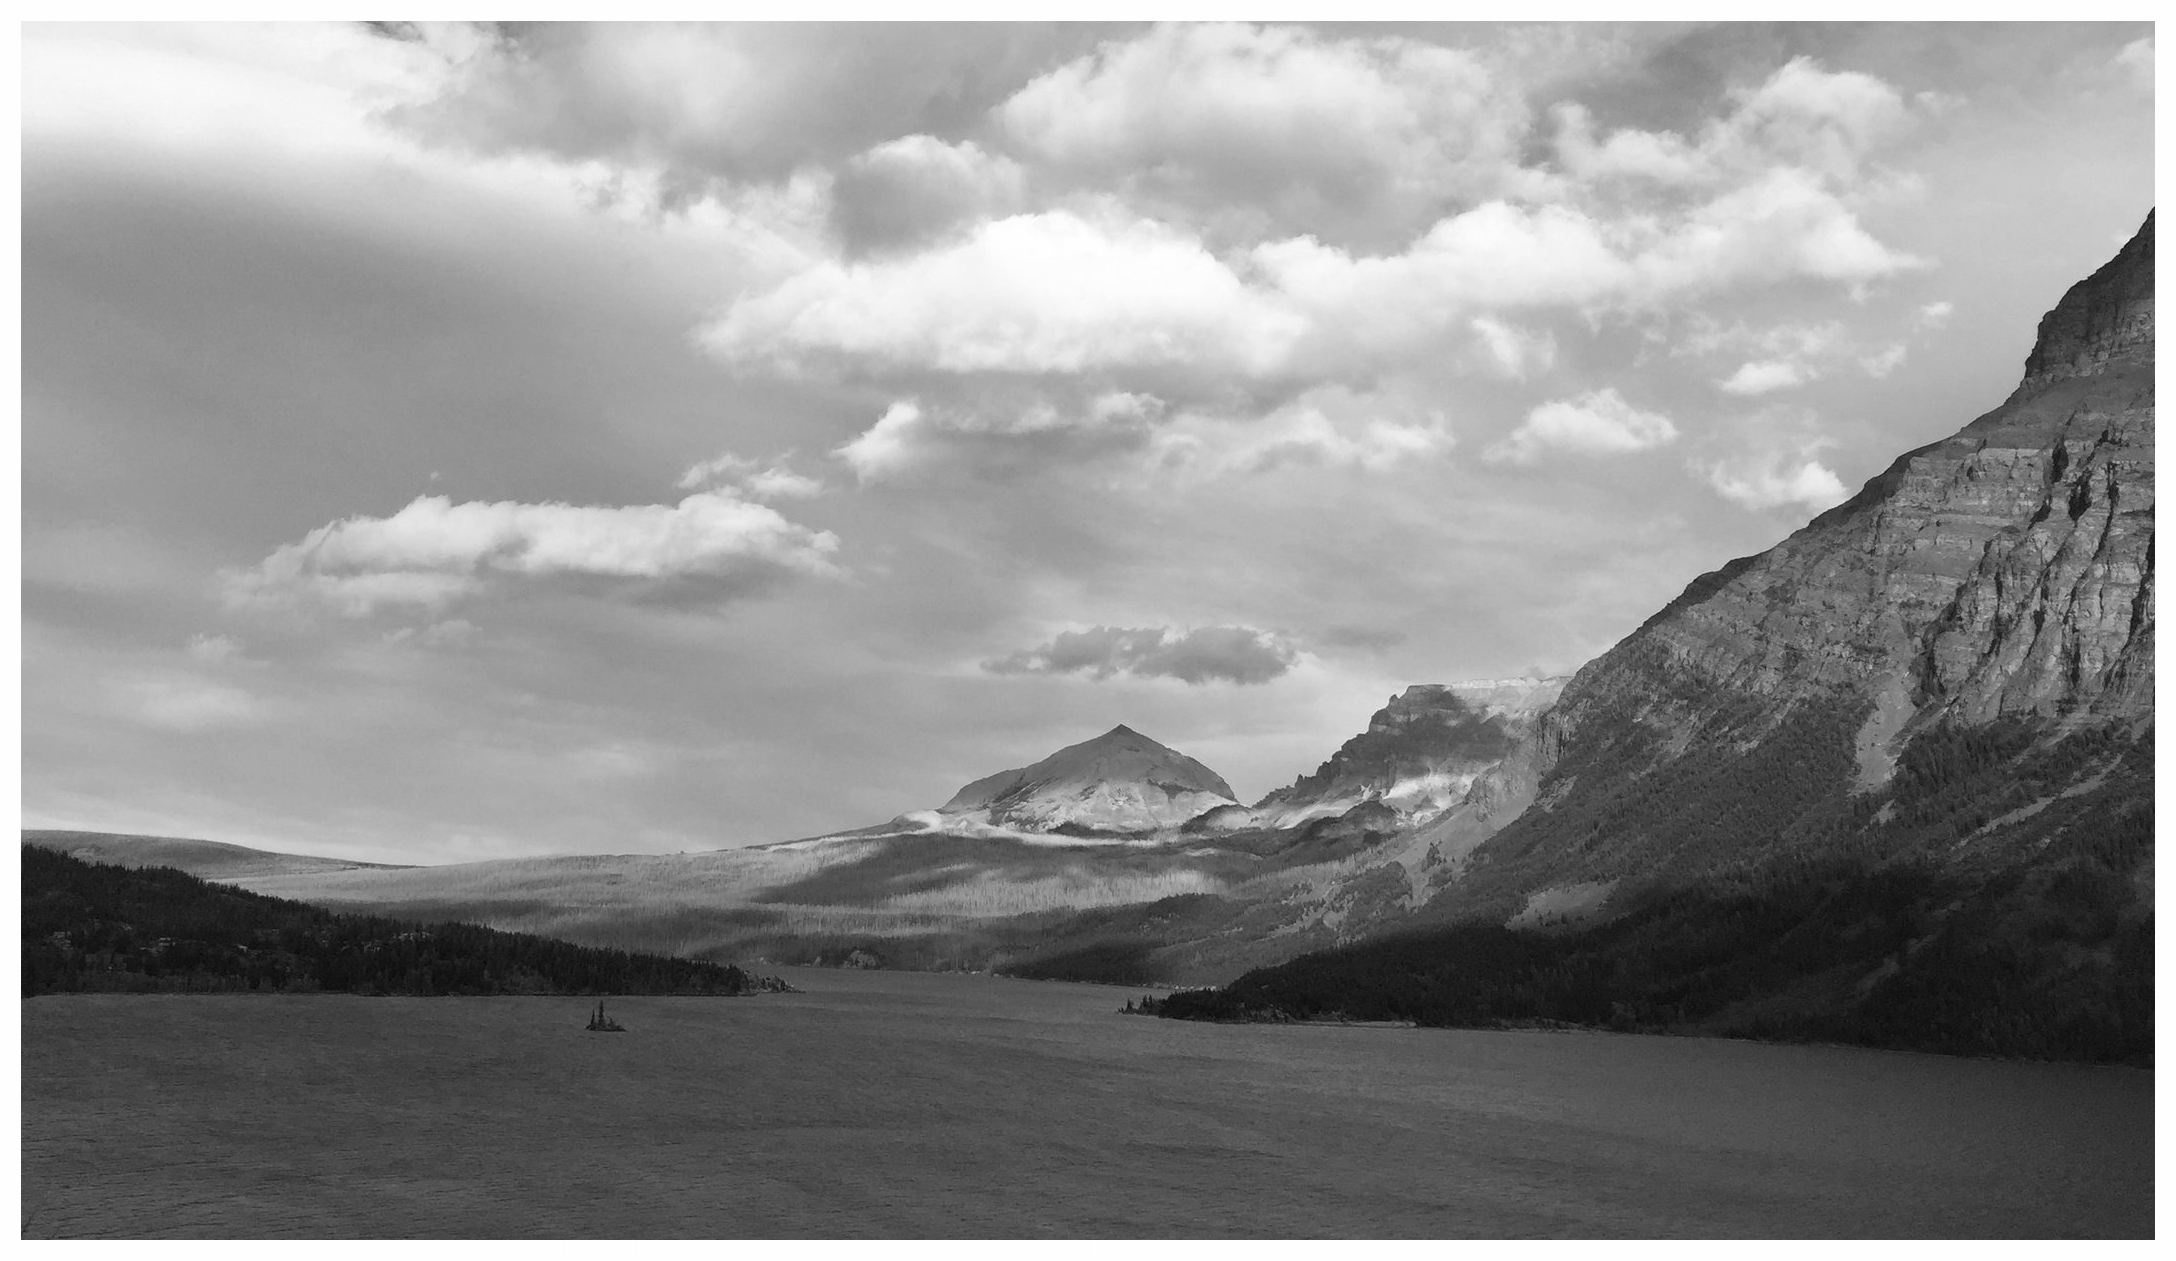 I took this photo June 2016, in Glacier National Park, MT.